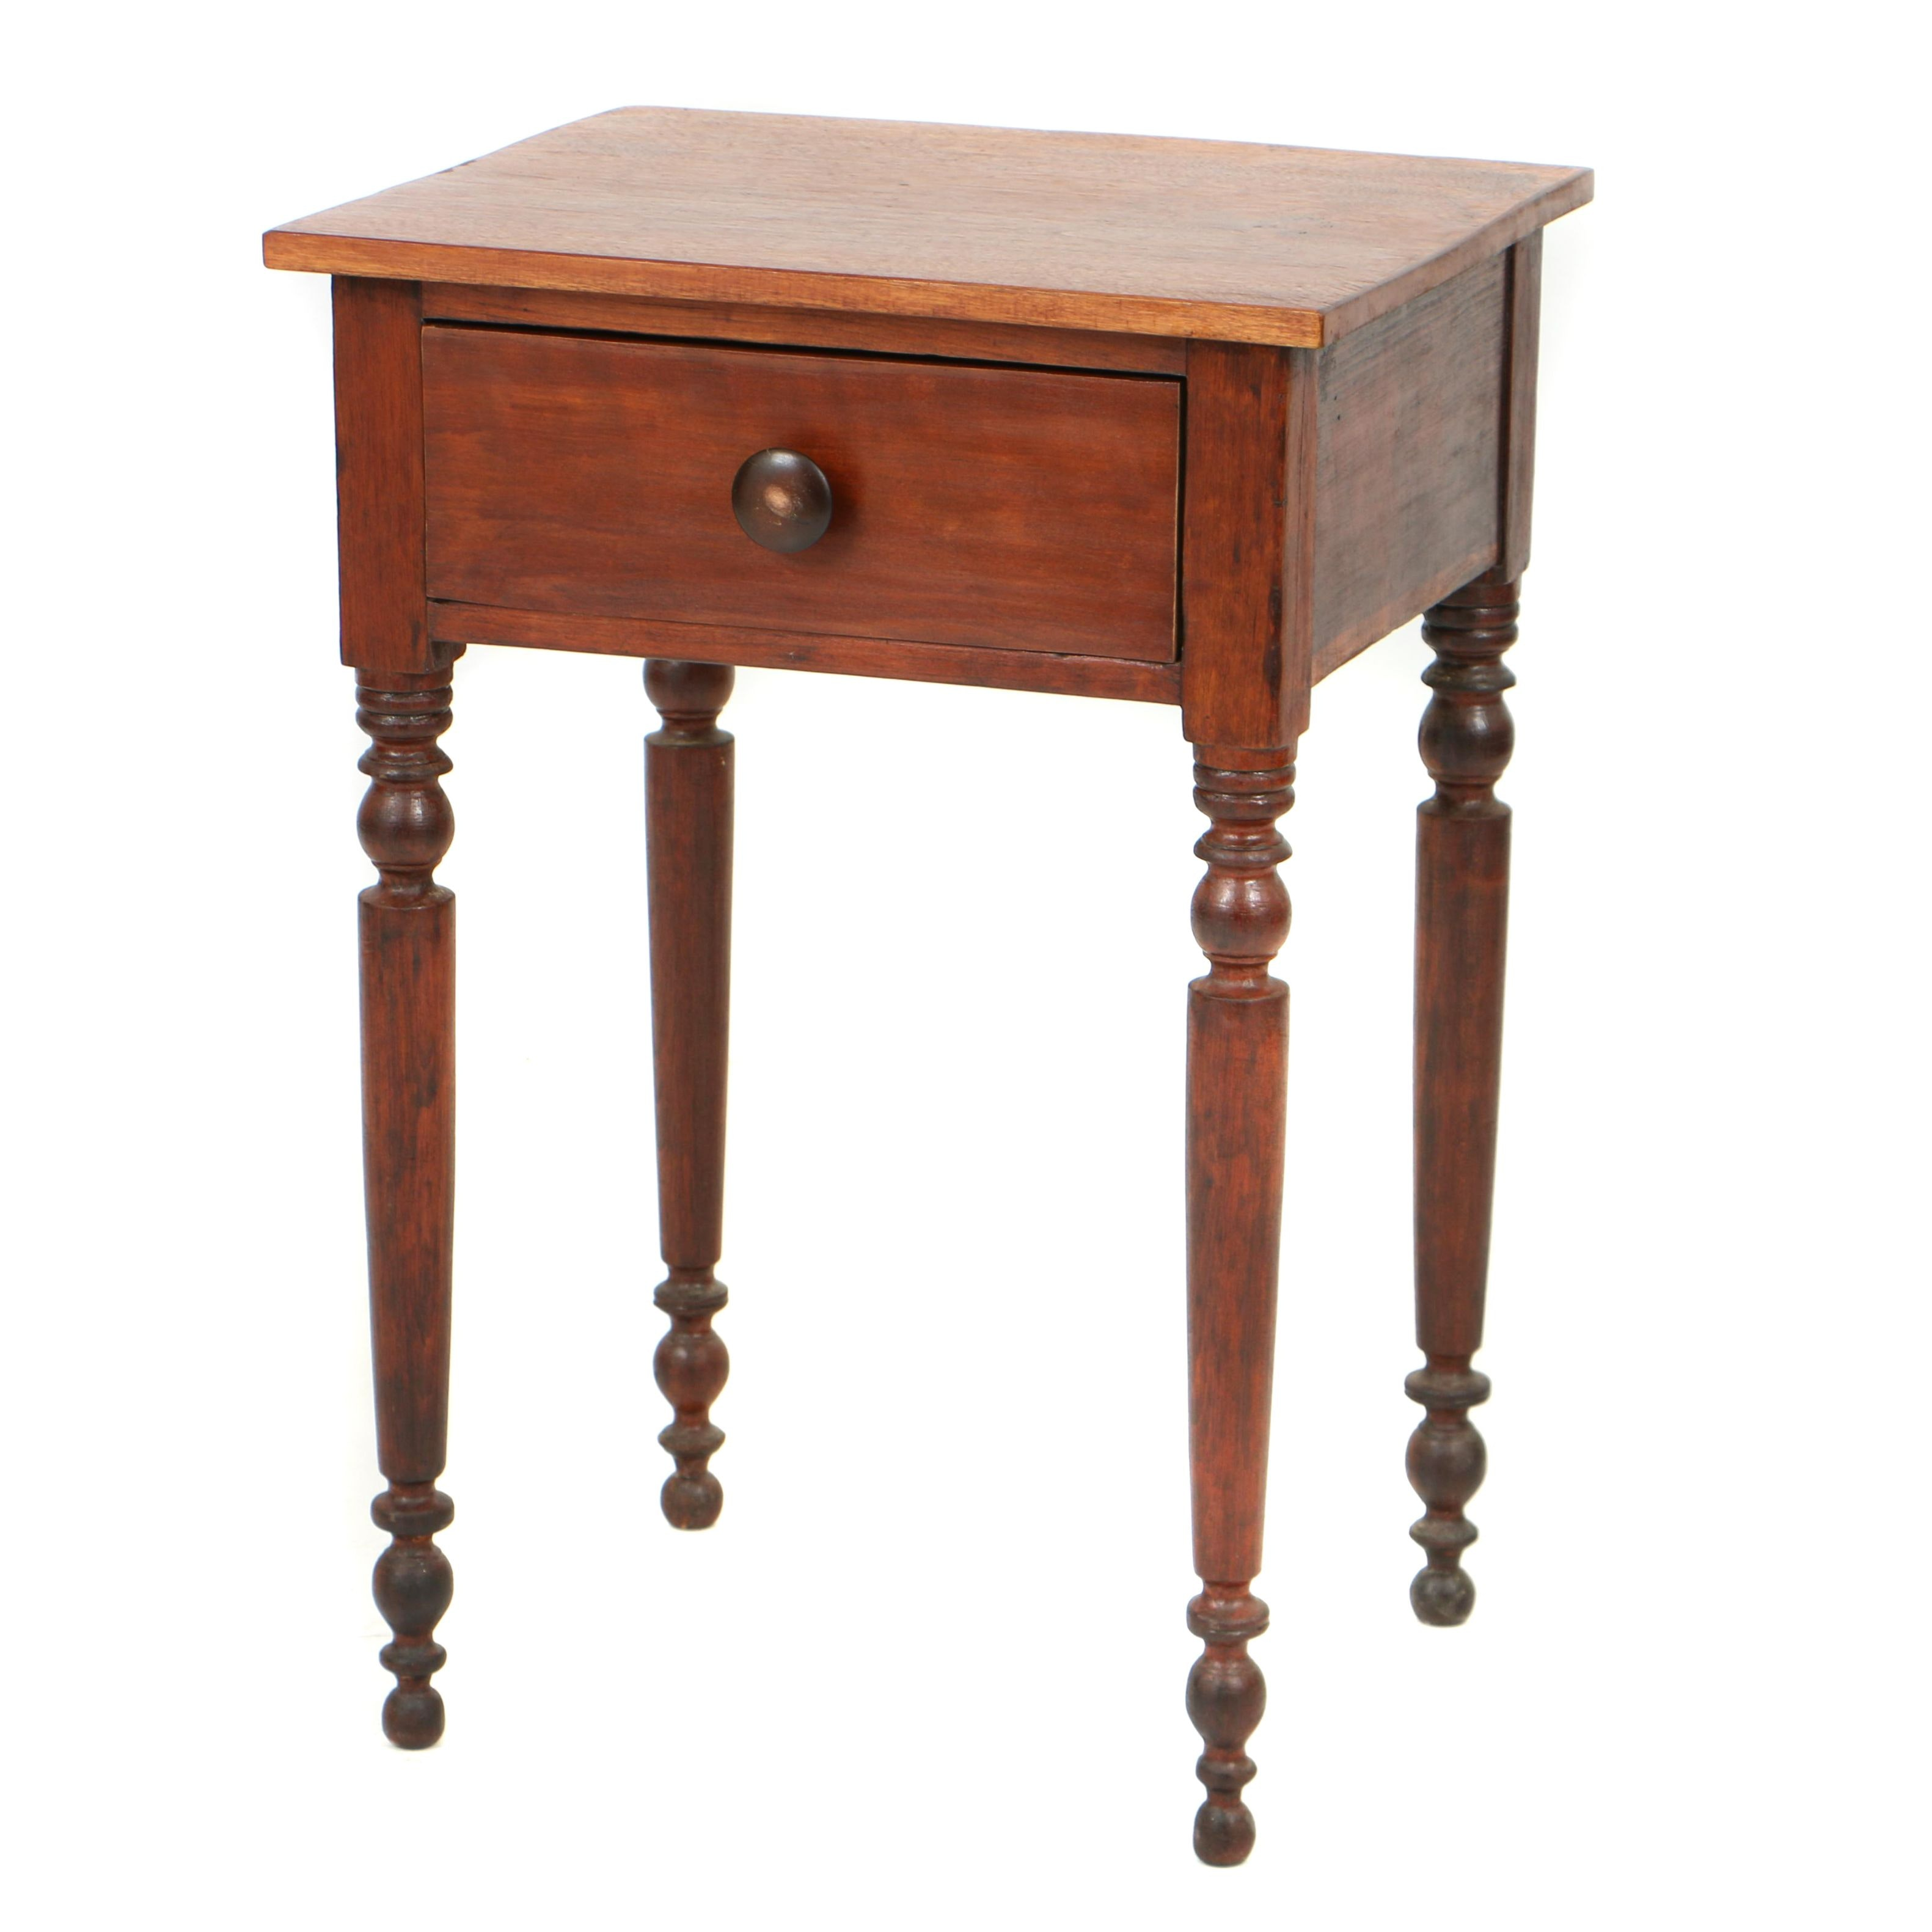 Antique Country Sheraton One-Drawer Stand, Circa 1825-1835